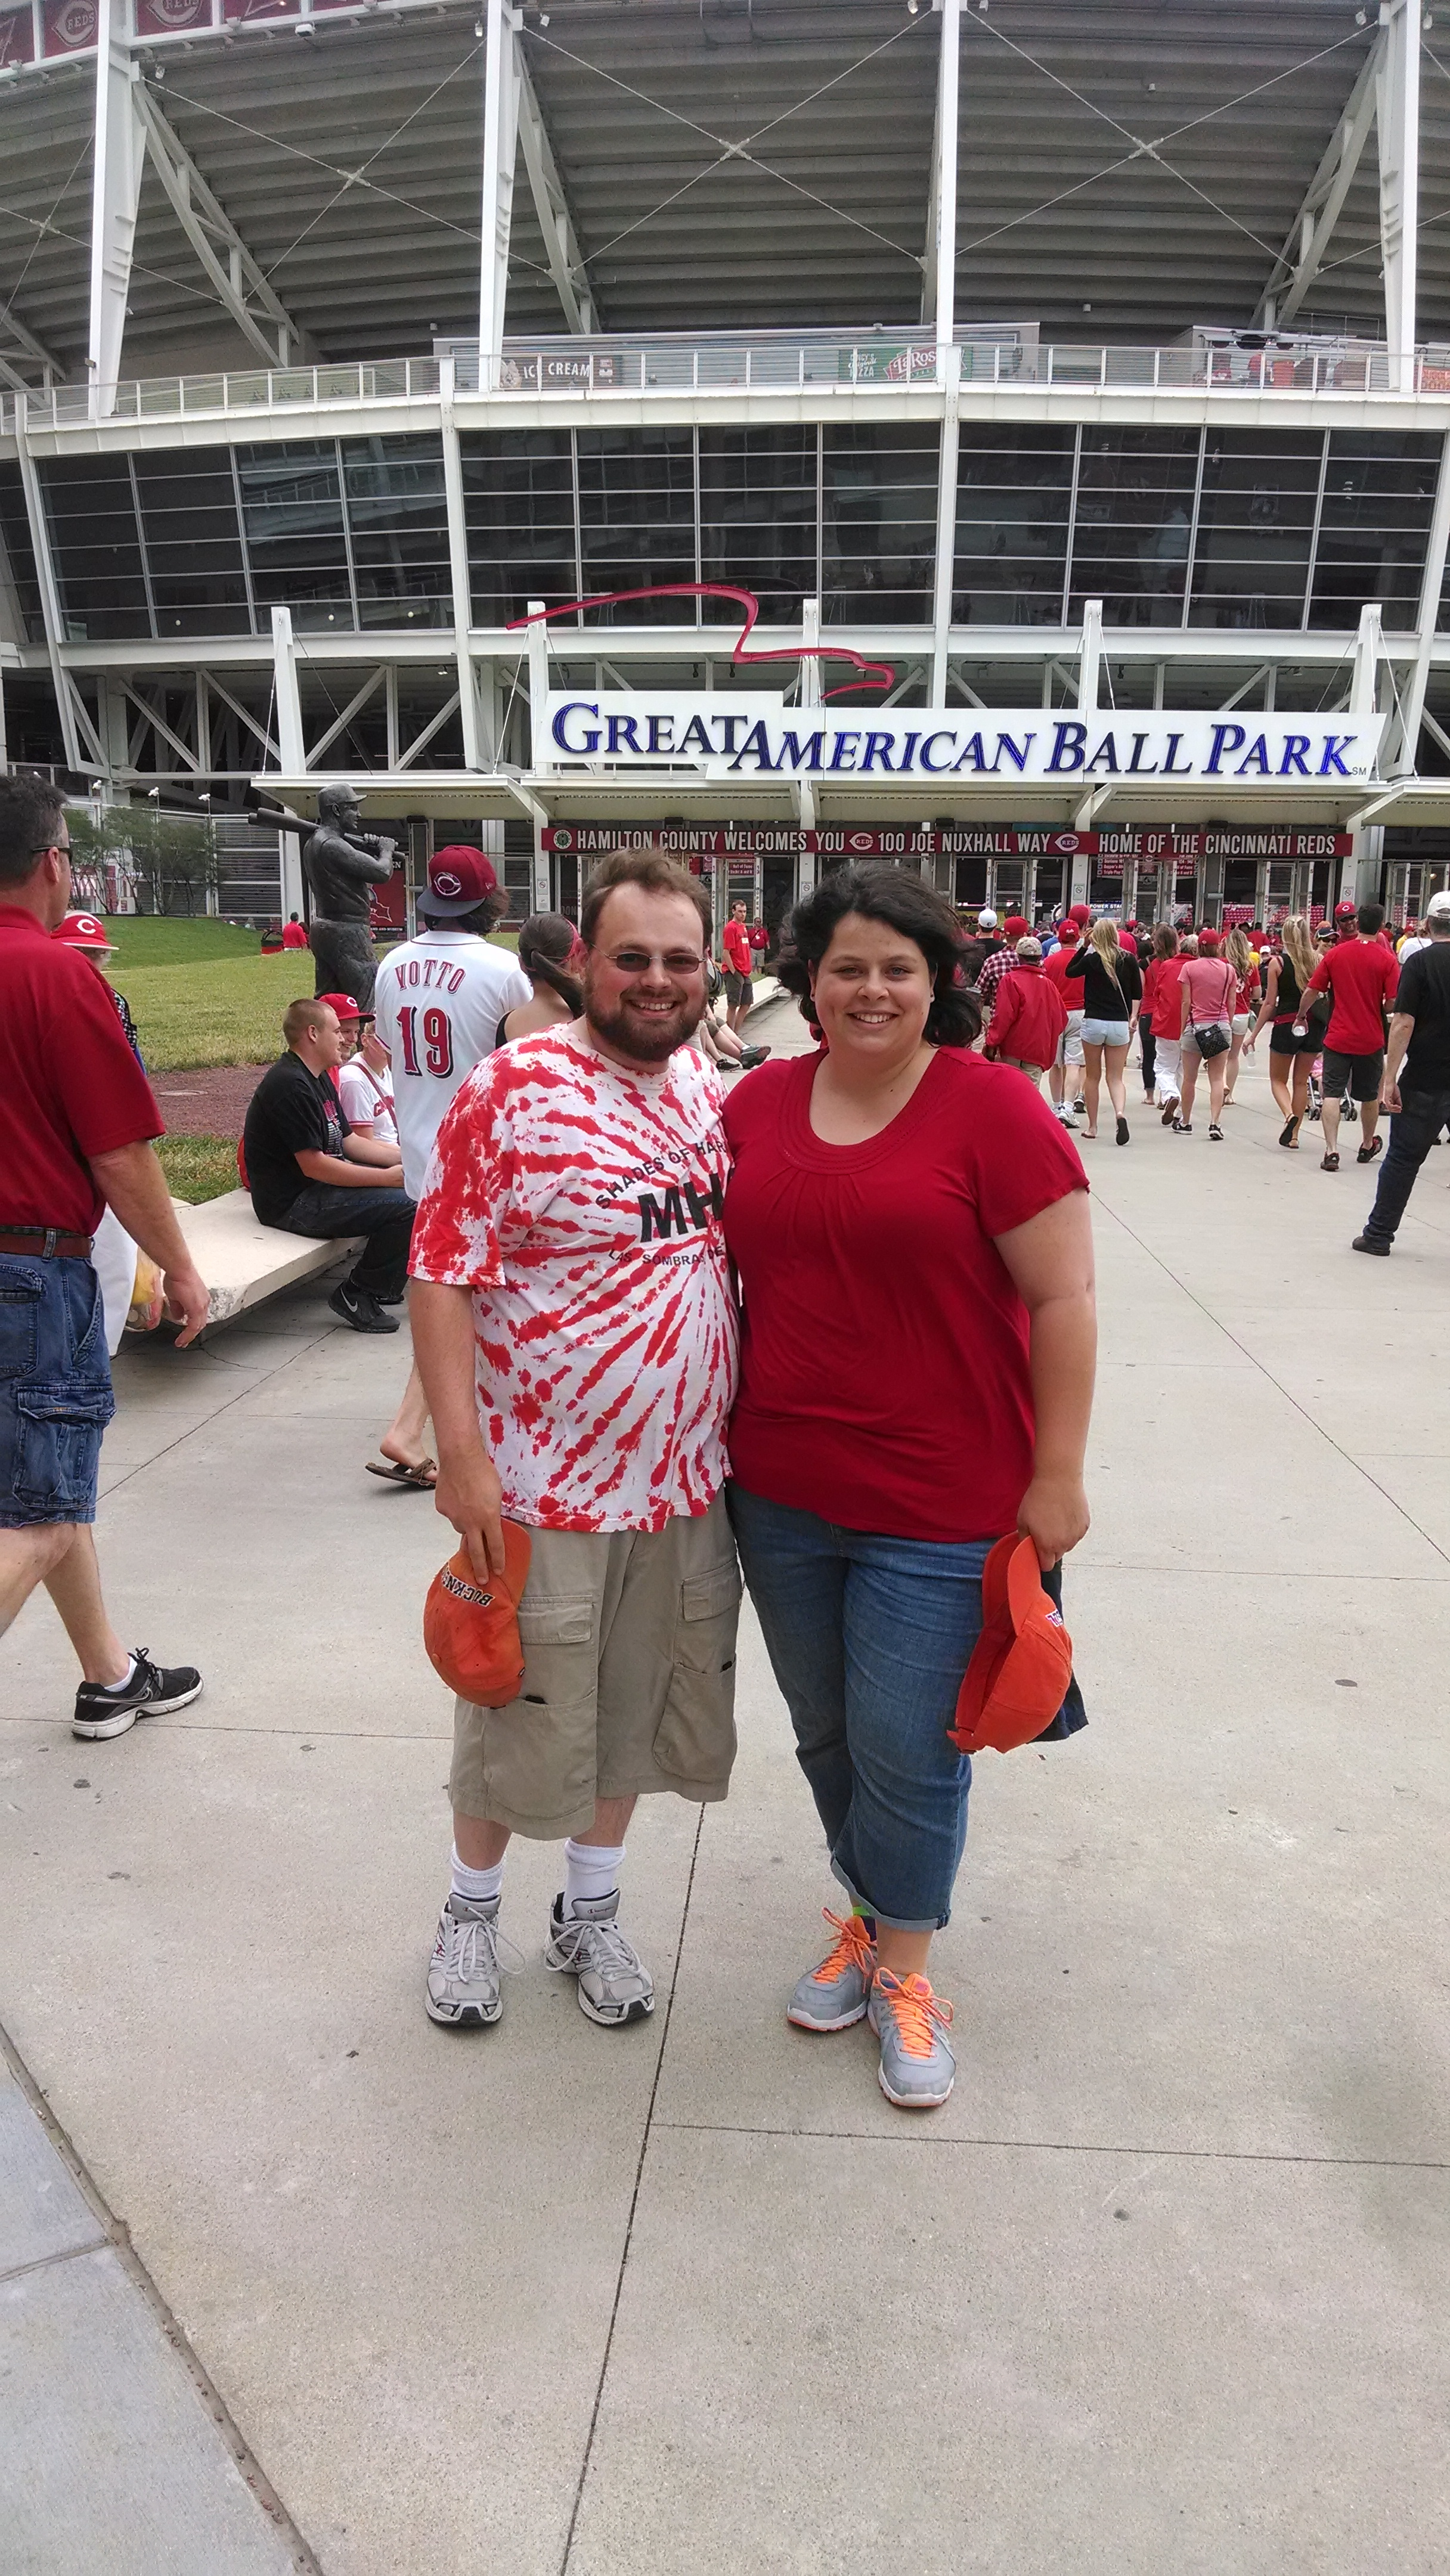 My first Reds game!